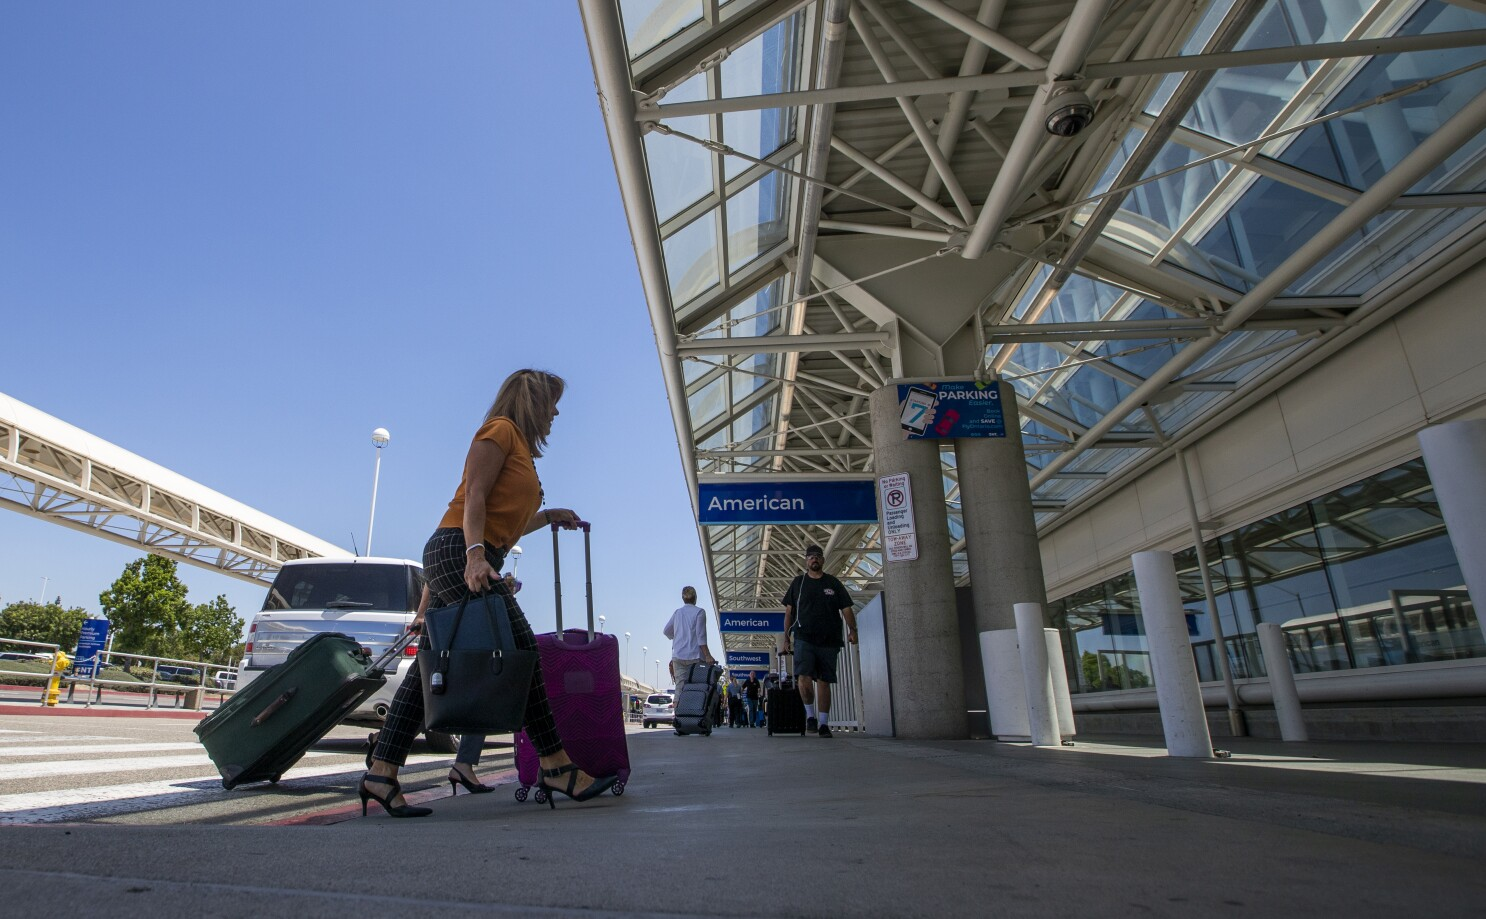 Lax And Ontario Airports Now Offer Covid 19 Testing Los Angeles Times